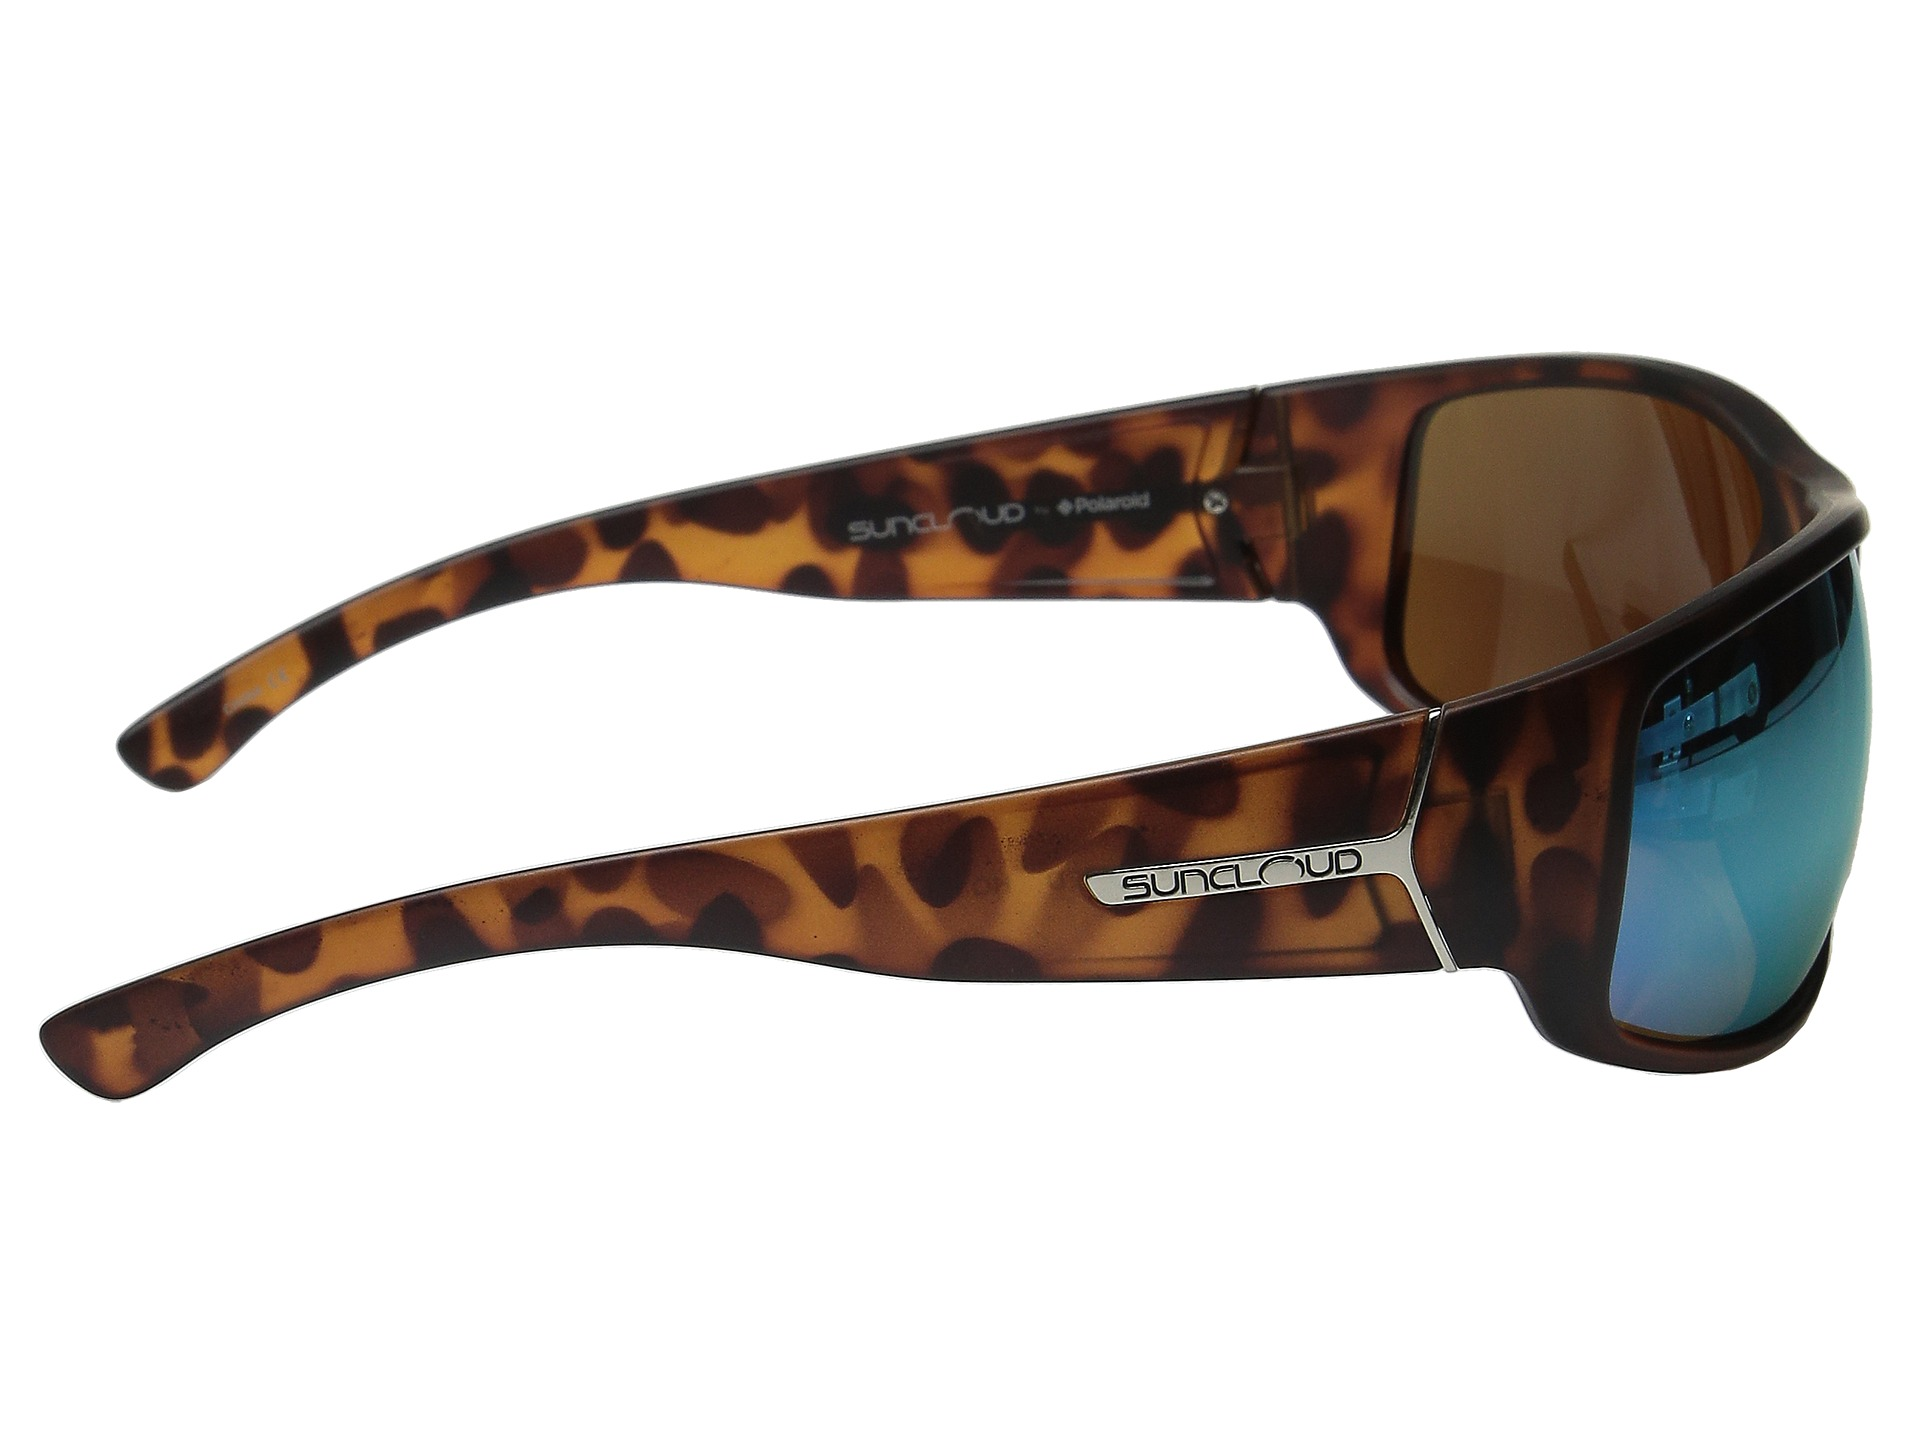 Suncloud Sunglasses Warranty  suncloud polarized optics turbine zappos com free shipping both ways